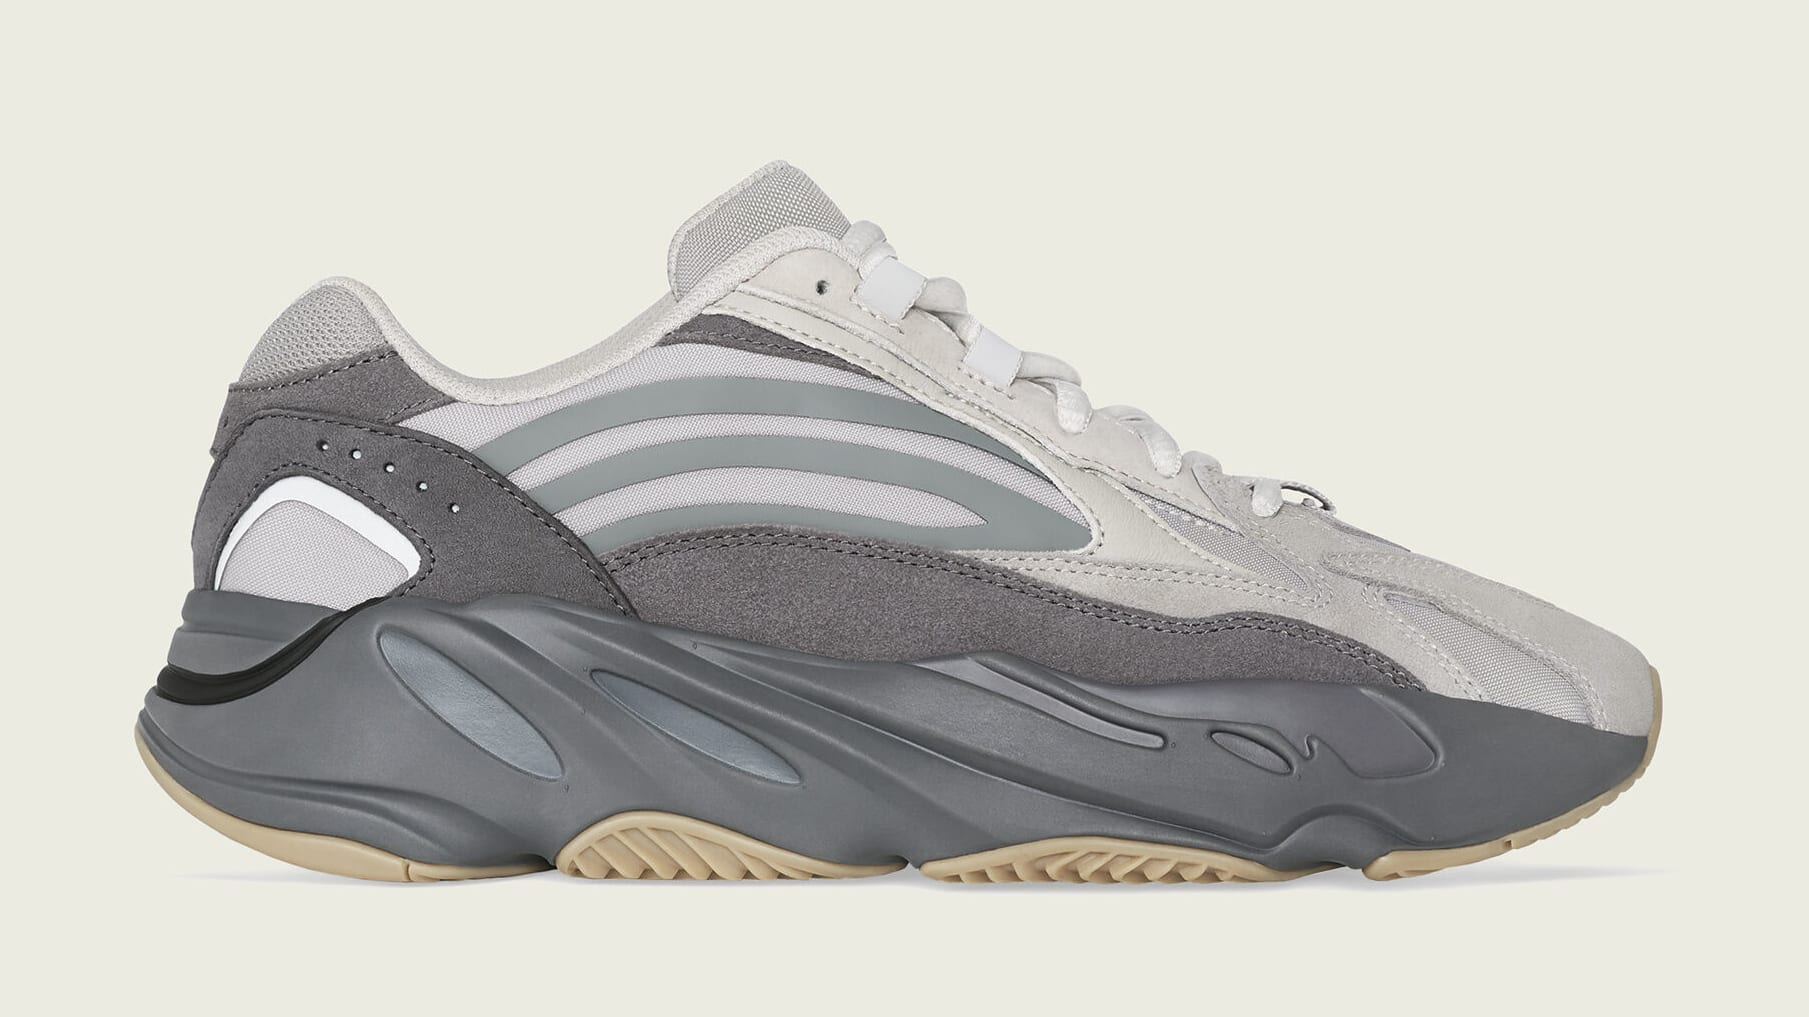 Adidas Yeezy Boost 700 V2 'Tephra' FU7914 Lateral